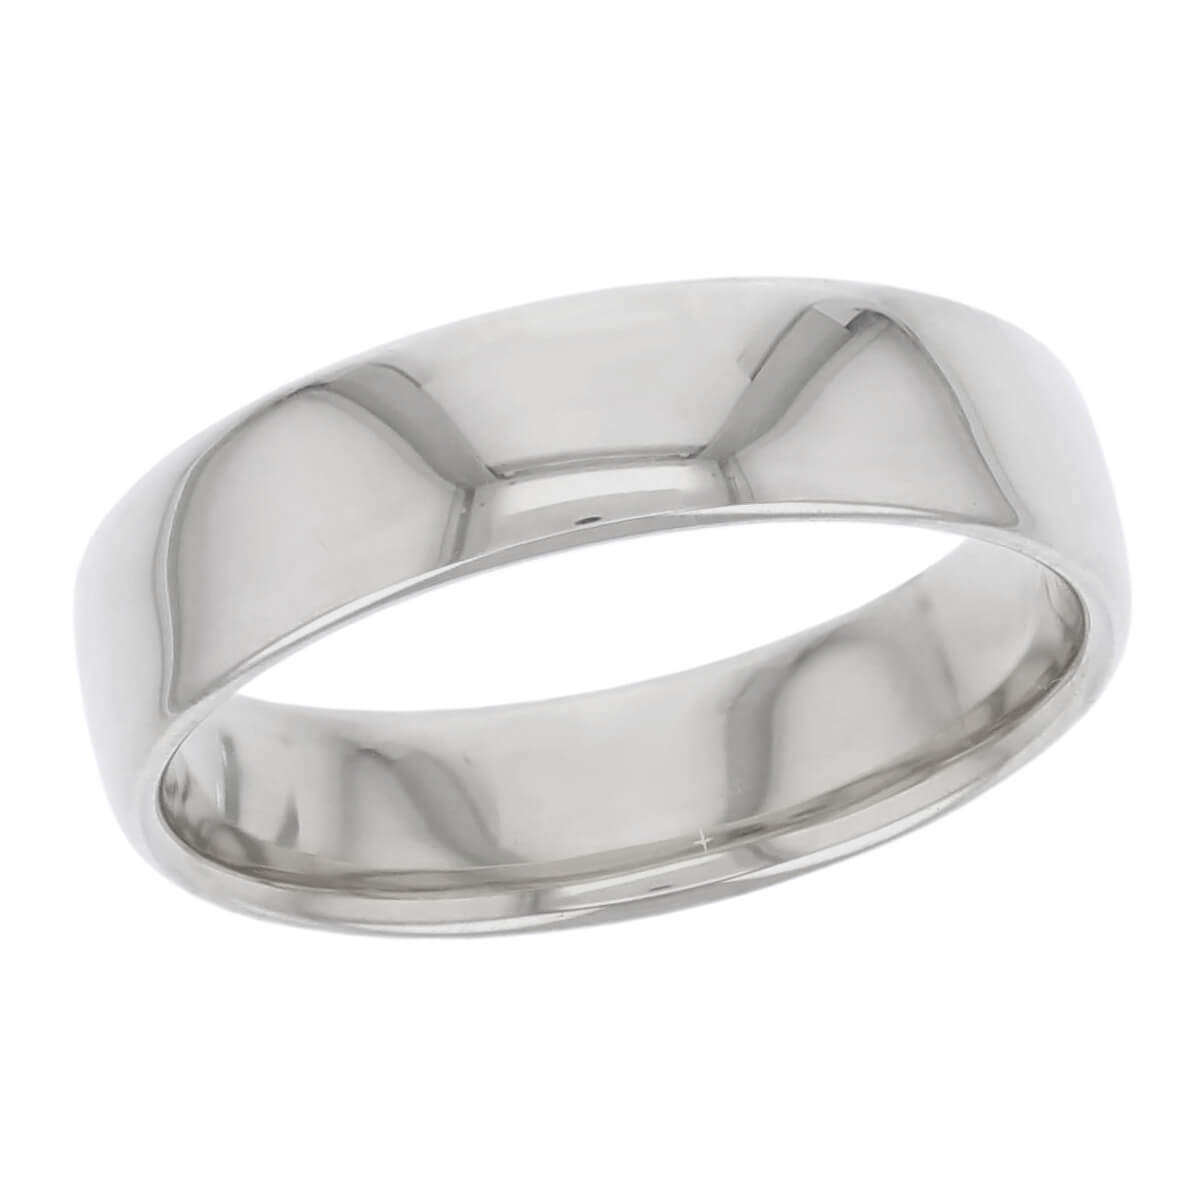 6.0mm wide platinum men's wedding ring, gents, bridal, plain, personalised engraving, court profile, comfort fit, add pattern, marraige ring, precious jewellery by Faller of Derry/ Londonderry, jewelry